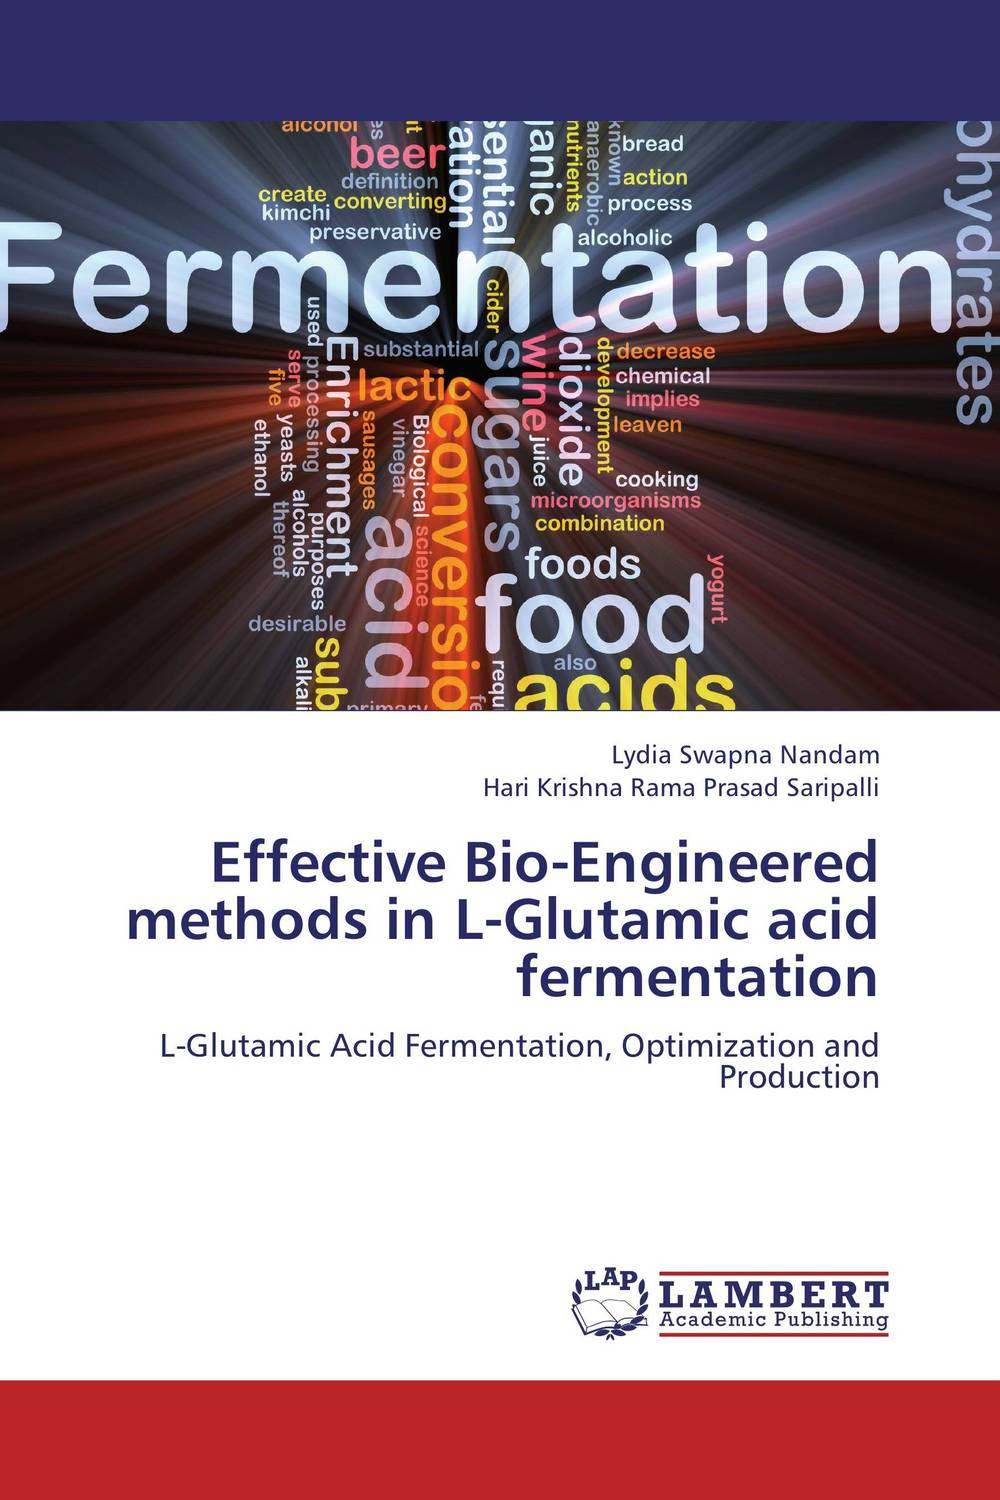 Effective Bio-Engineered methods in L-Glutamic acid fermentation evaluation of aqueous solubility of hydroxamic acids by pls modelling